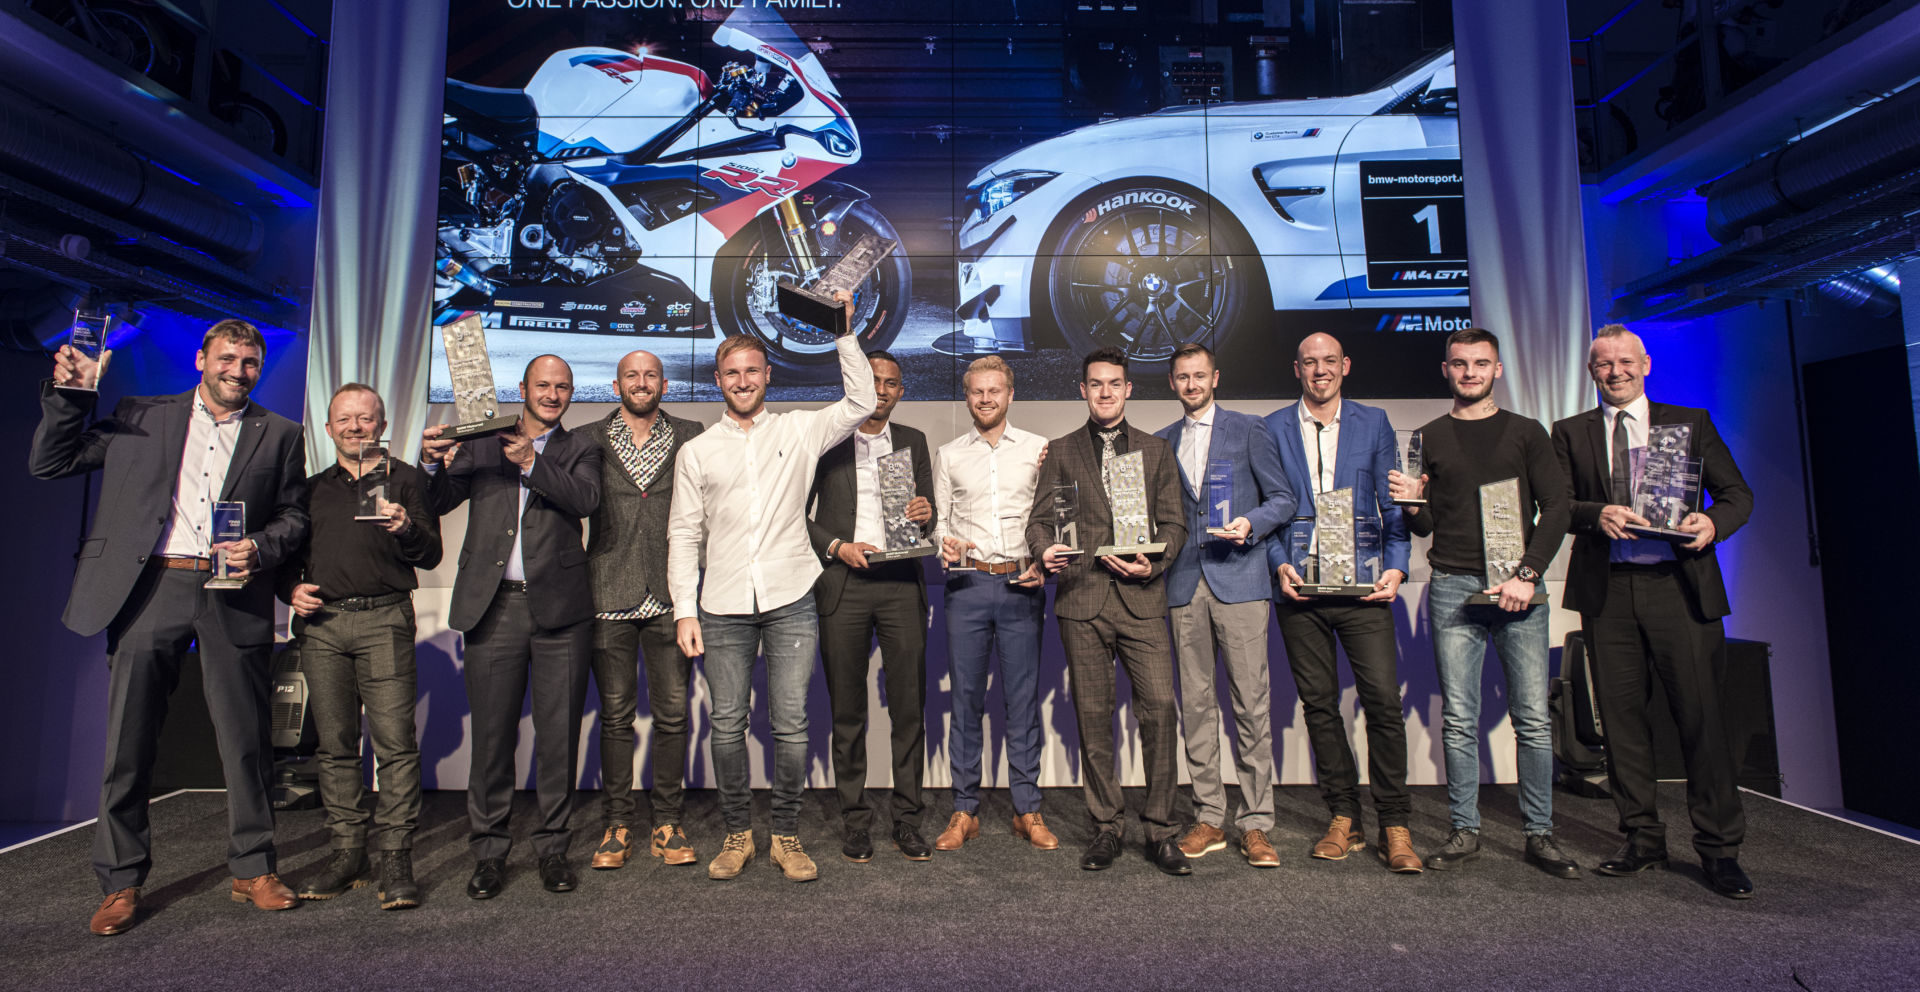 2019 BMW Motorrad Race Trophy top-10 finishers, including winner Davey Todd (fifth from left) and Canadian Superbike Champion Ben Young (fifth from right), on stage in Munich. Photo courtesy of BMW Motorrad Motorsport.